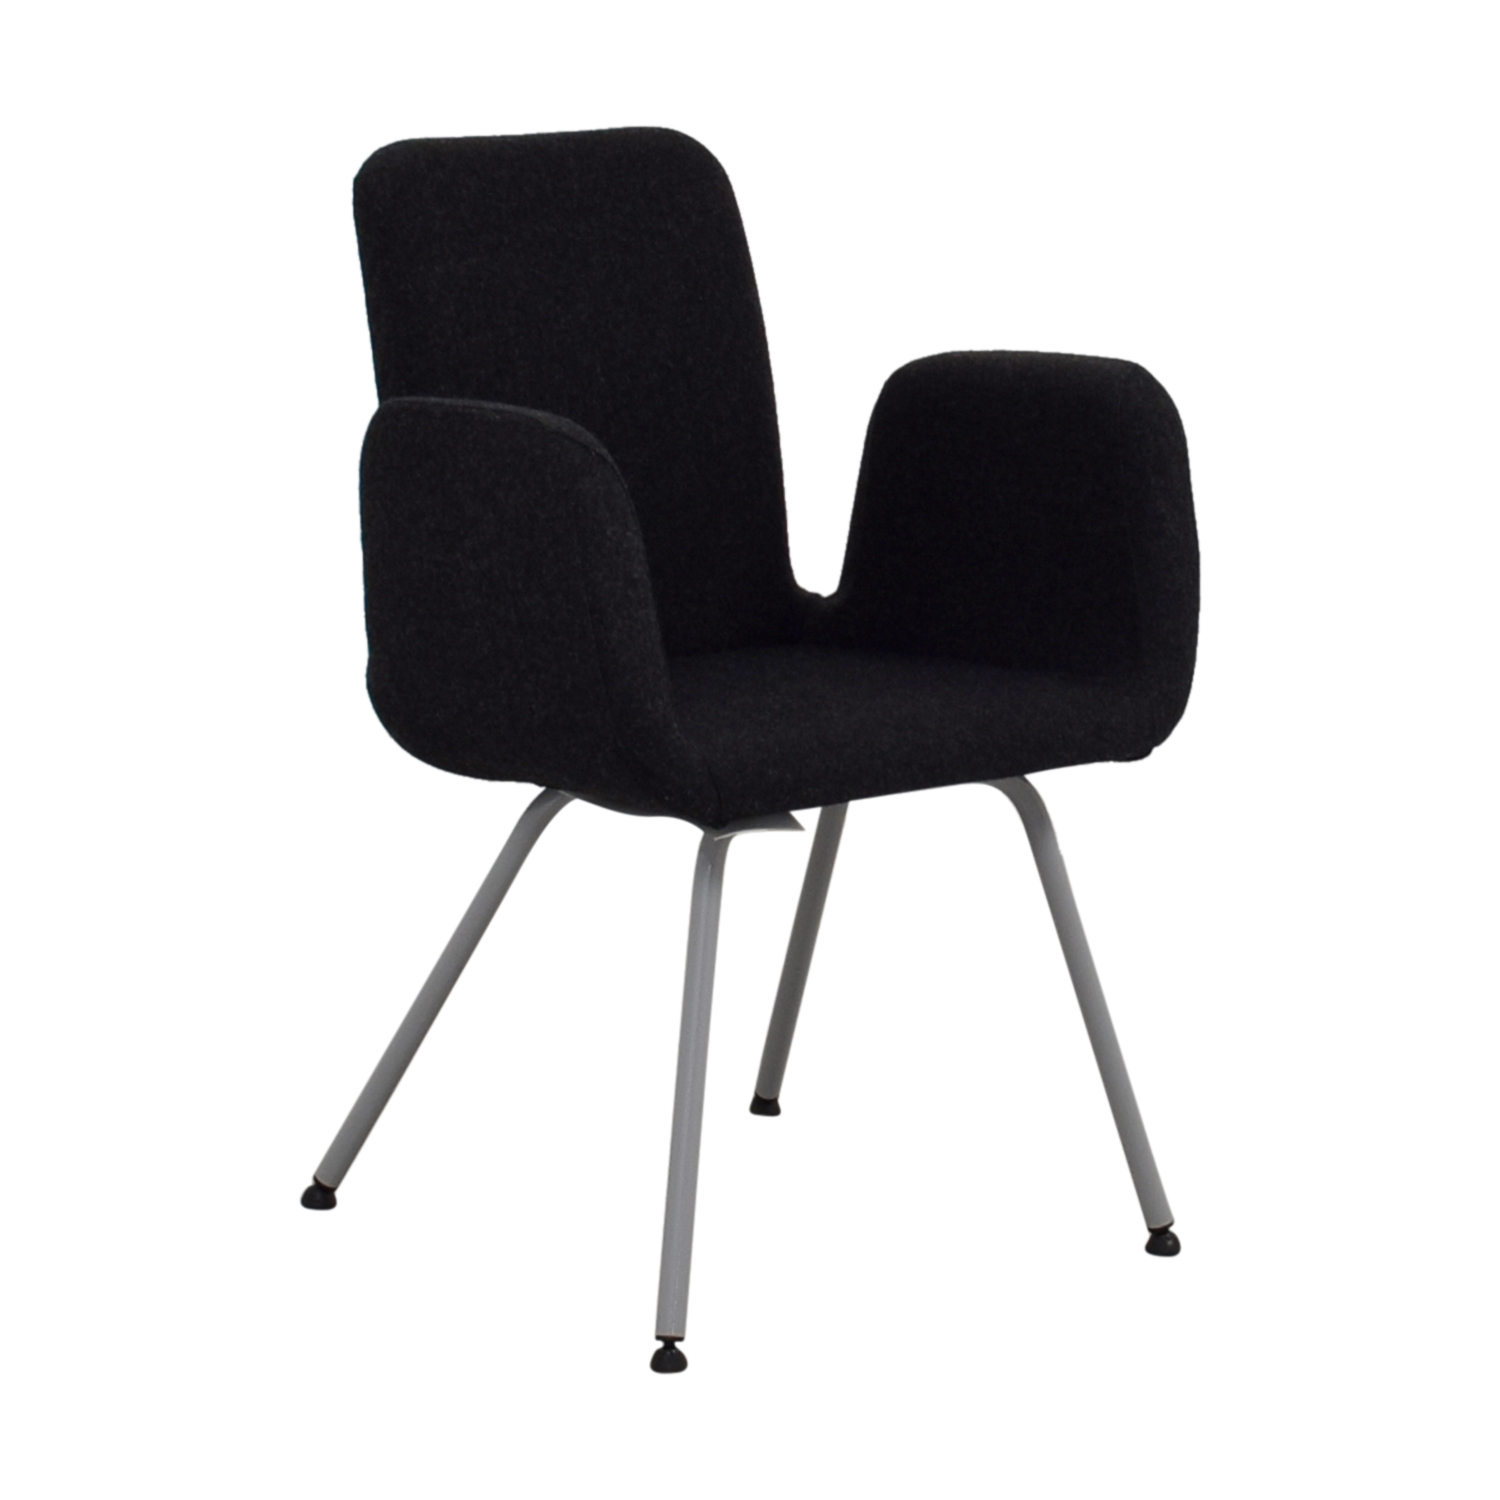 71 Off Ikea Ikea Patrick Black Accent Chair Chairs